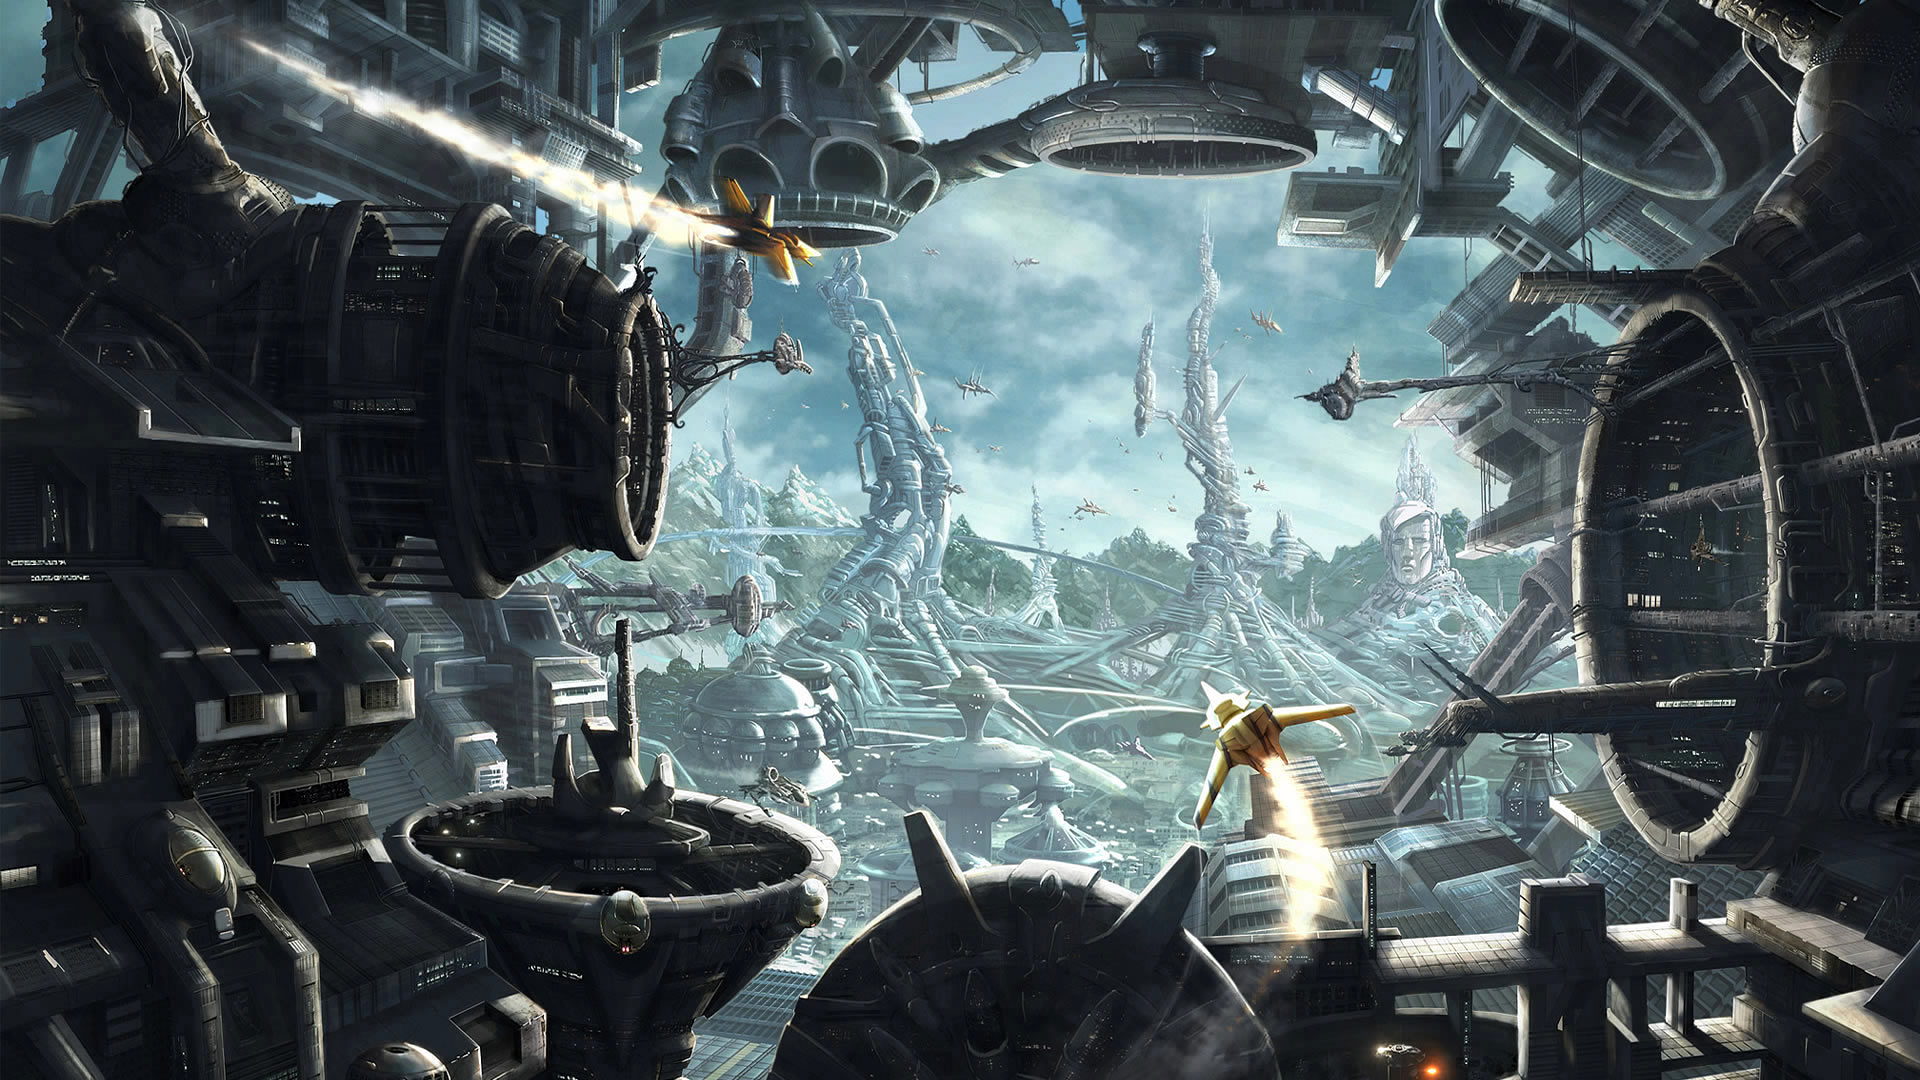 World Wallpaper Sci Fi Wallpaper: Sci-fi Wallpaper Of The Week #9